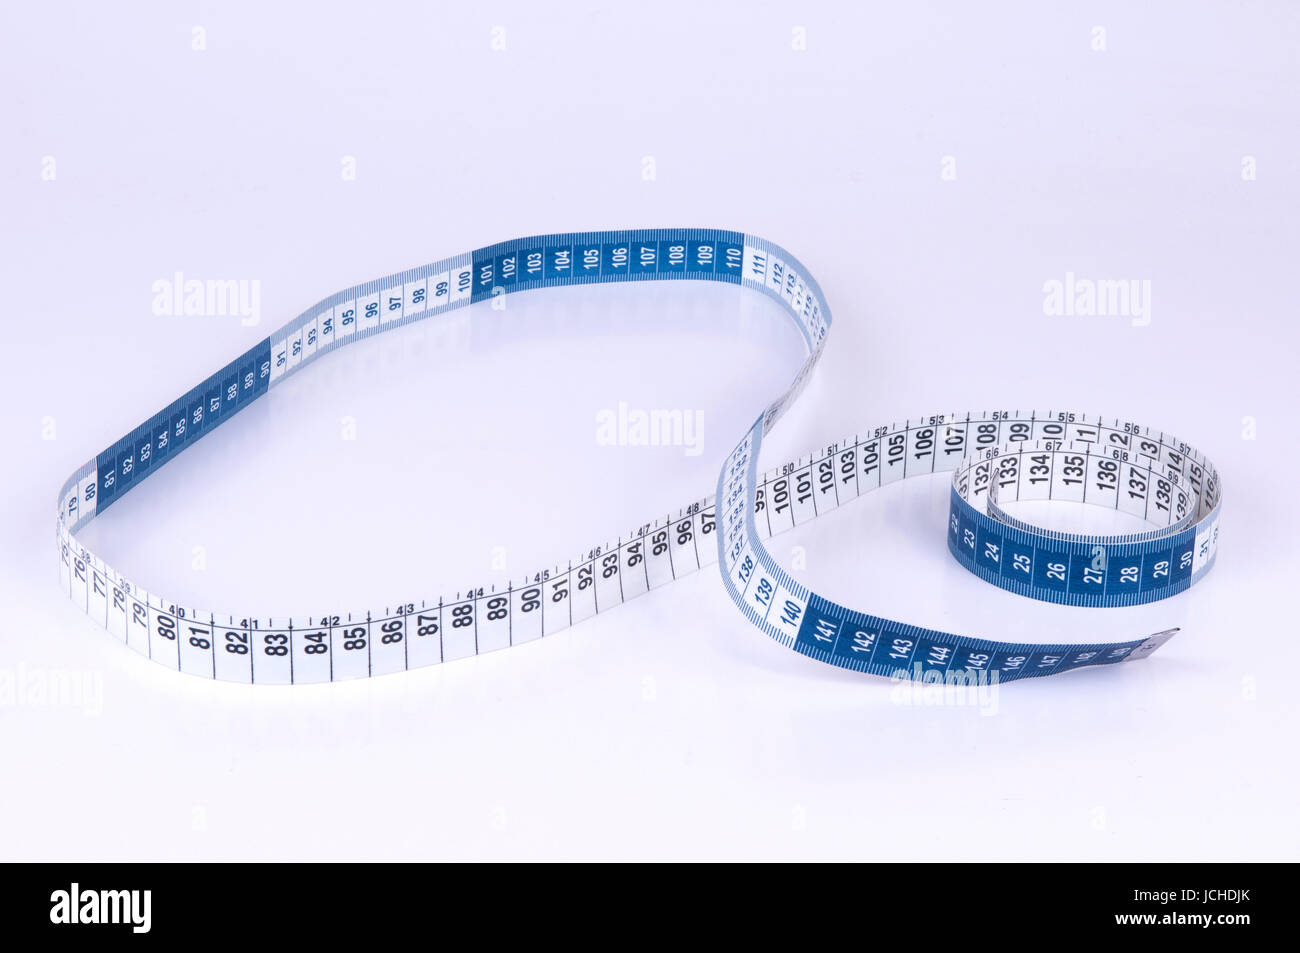 A tape measure or measuring tape is a flexible ruler on white background - Stock Image